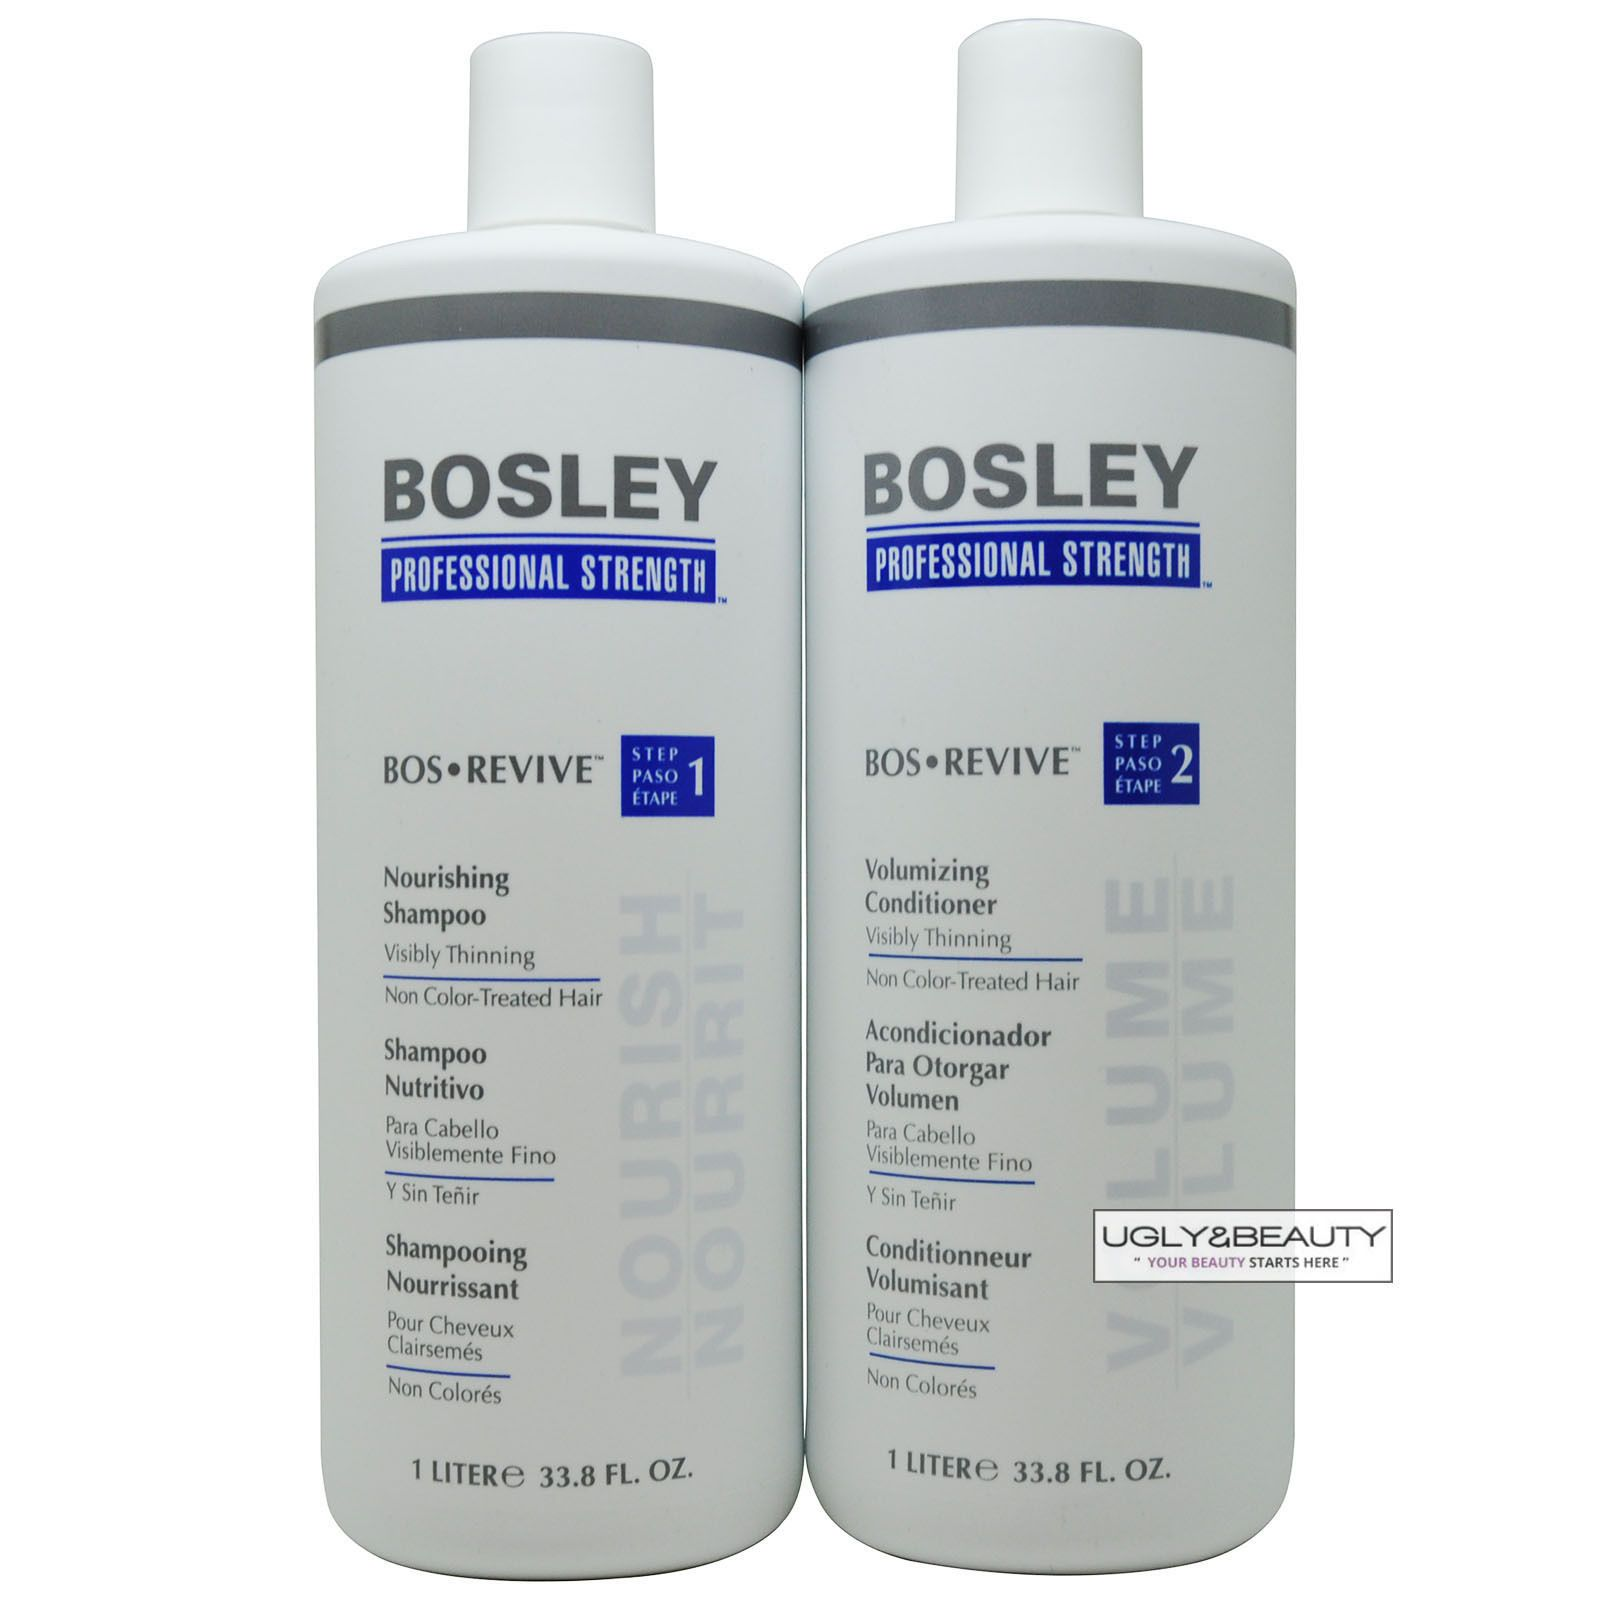 Details about Bosley Bos Revive Shampoo & Conditioner 1